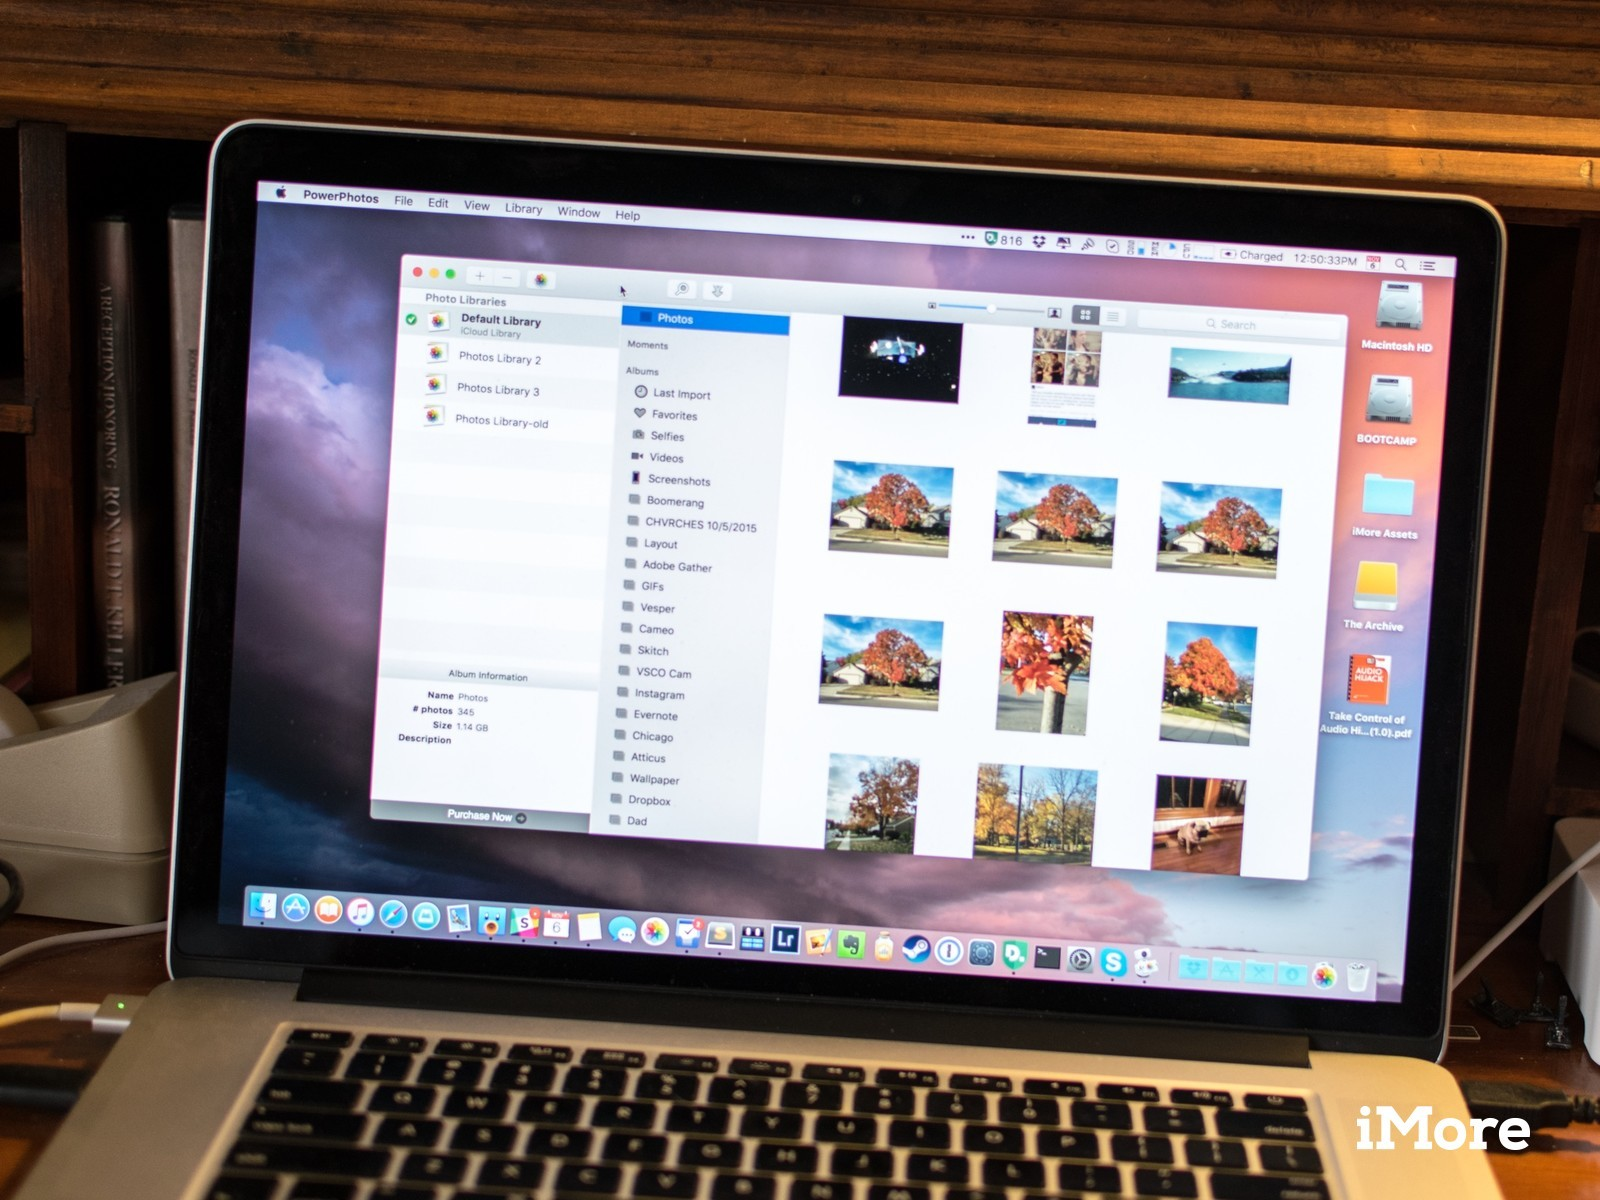 PowerPhotos will help you merge libraries in Photos for OS X